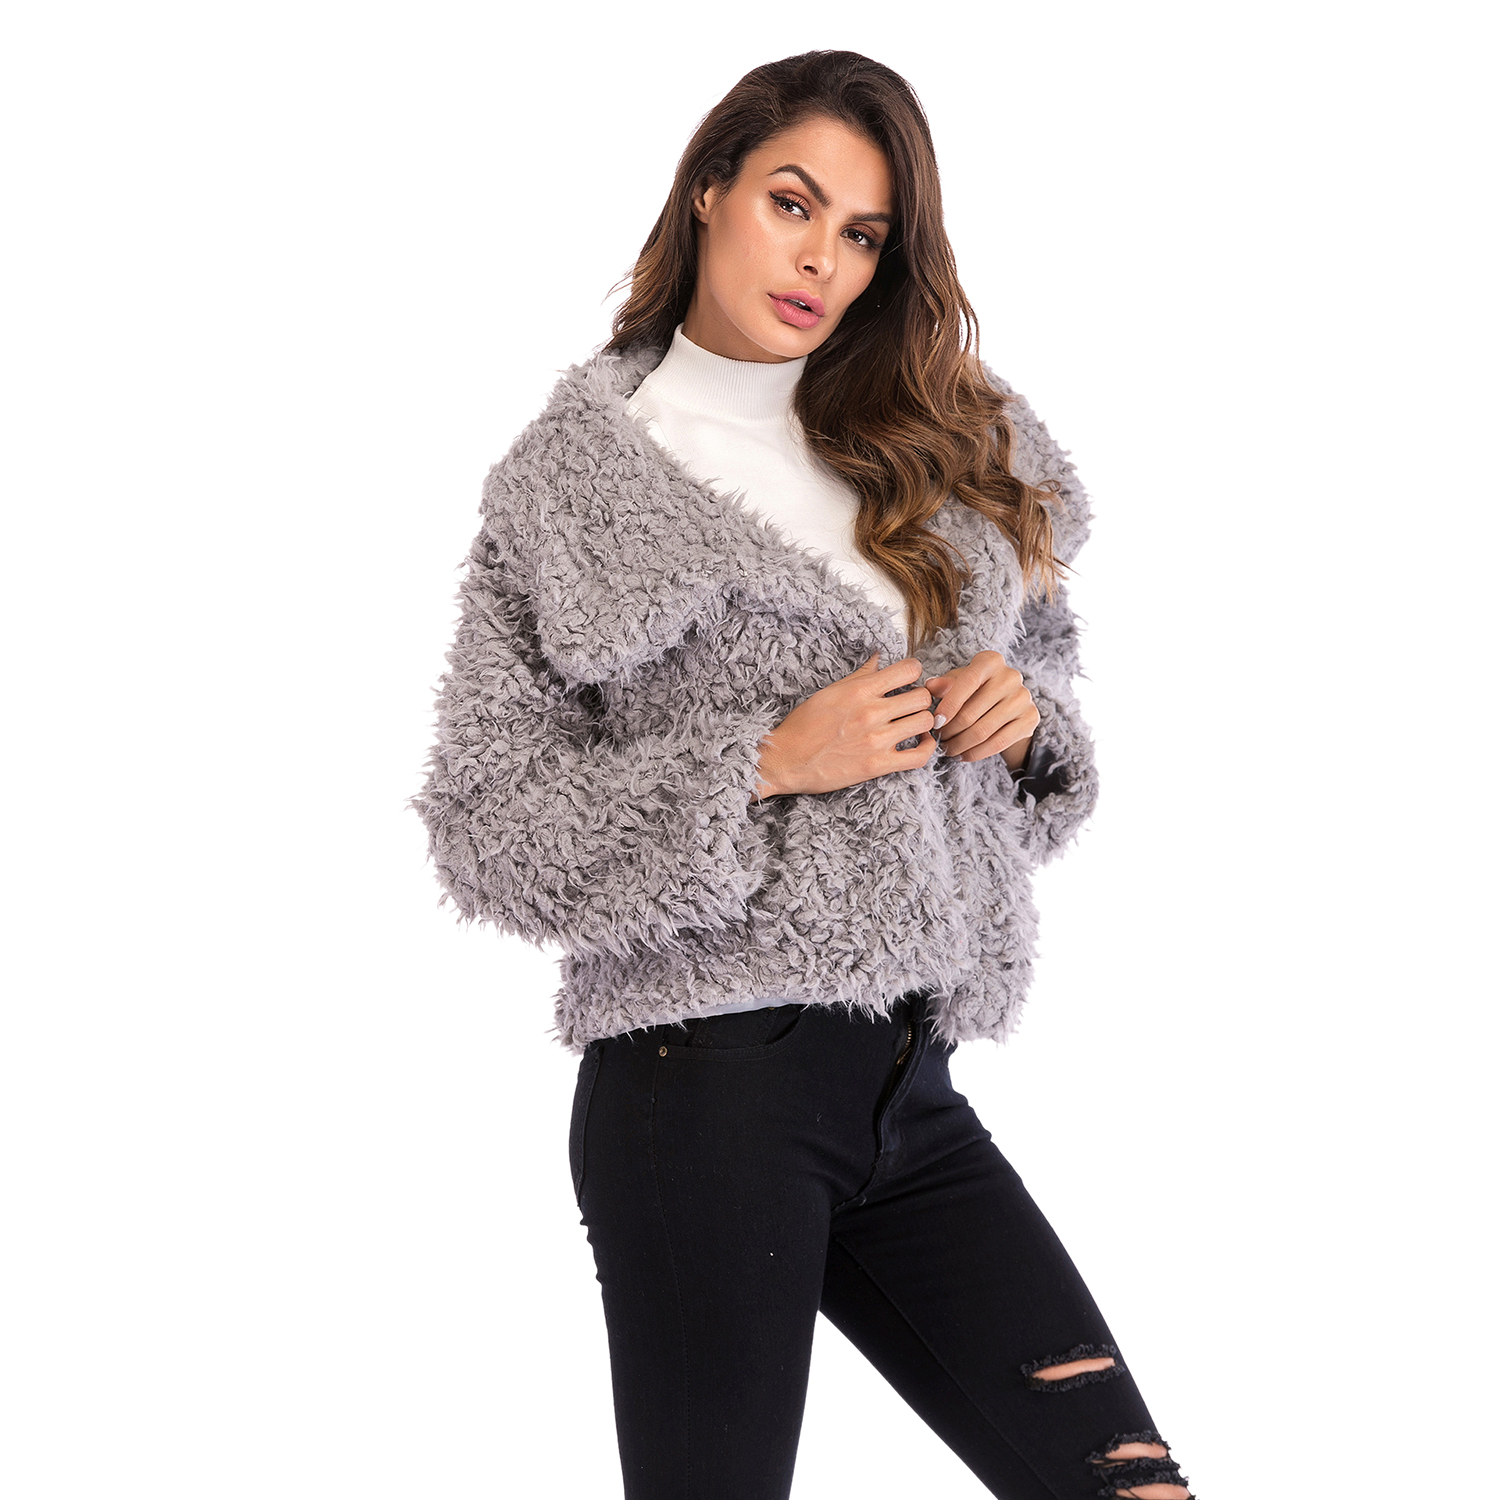 Aliexpress.com : Buy Winter Fuzzy Warm Long Sleeve Sweater